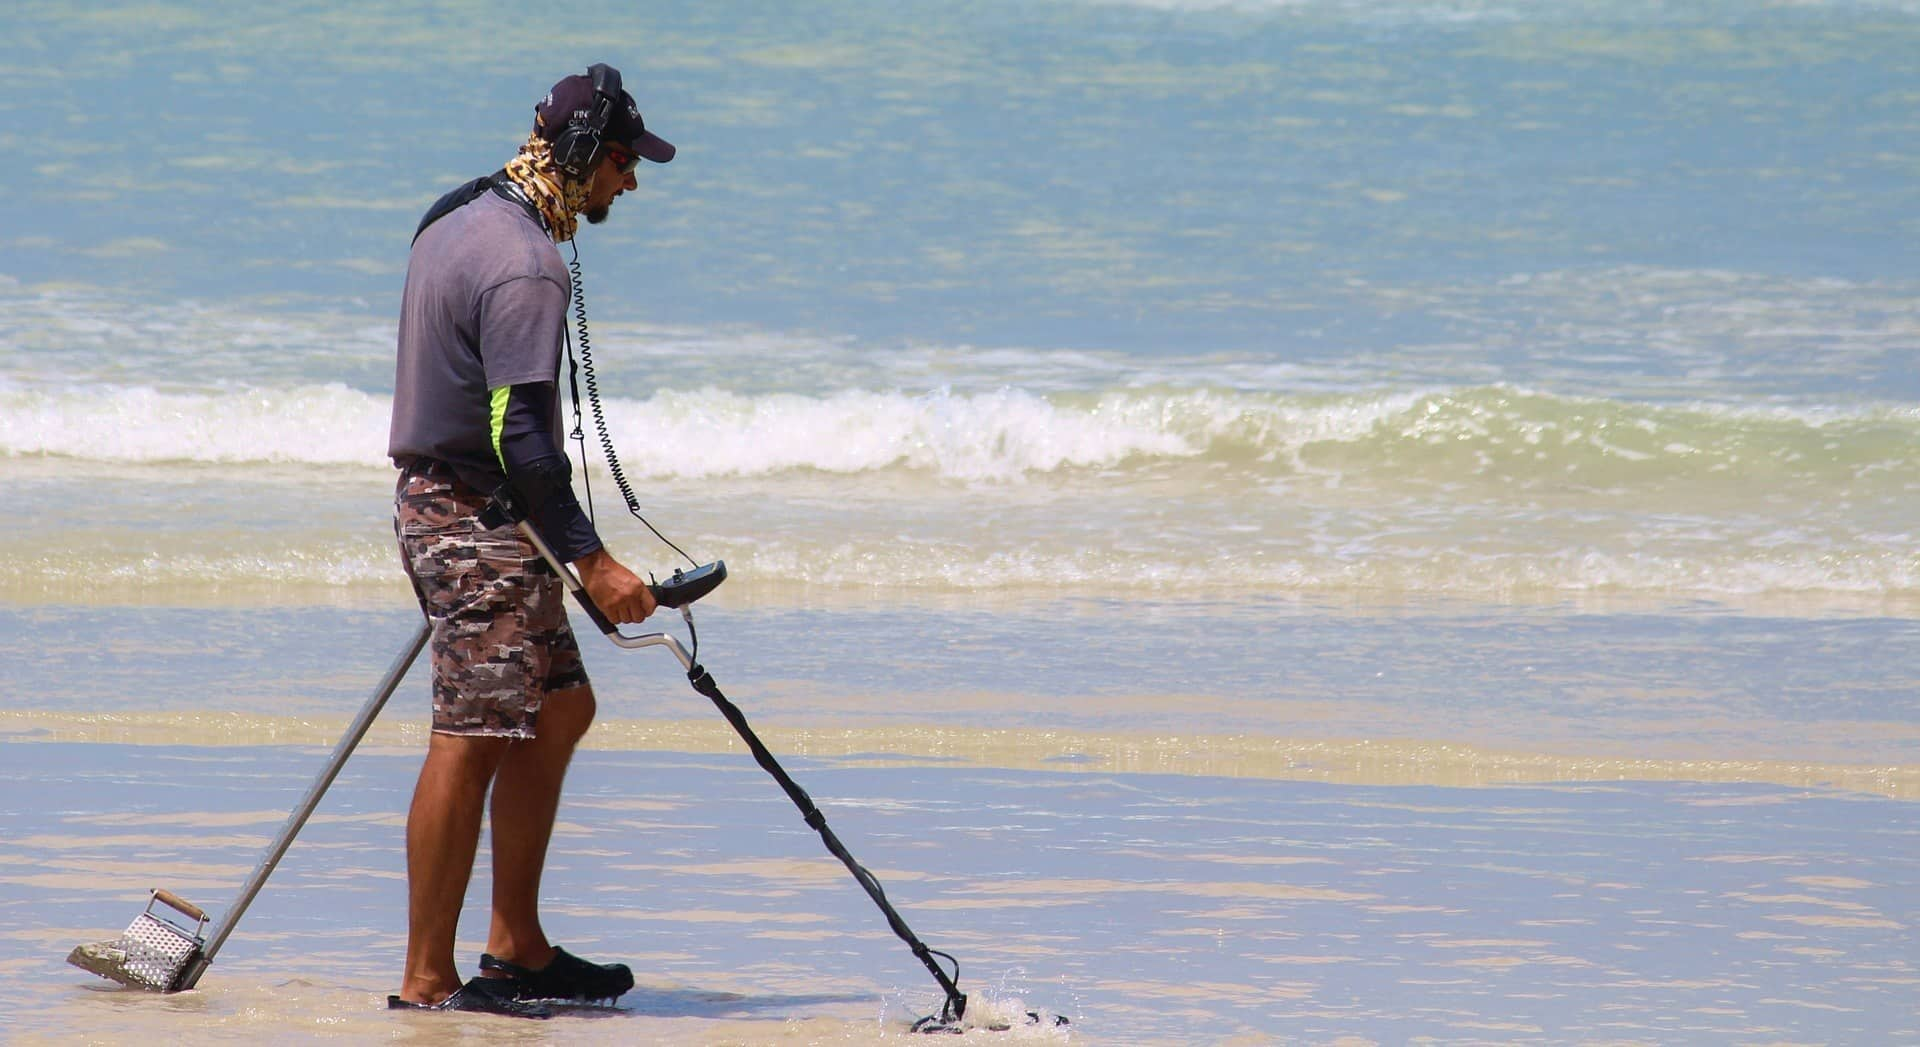 The Best Metal Detector for 2019 - Reviews and Comparisons